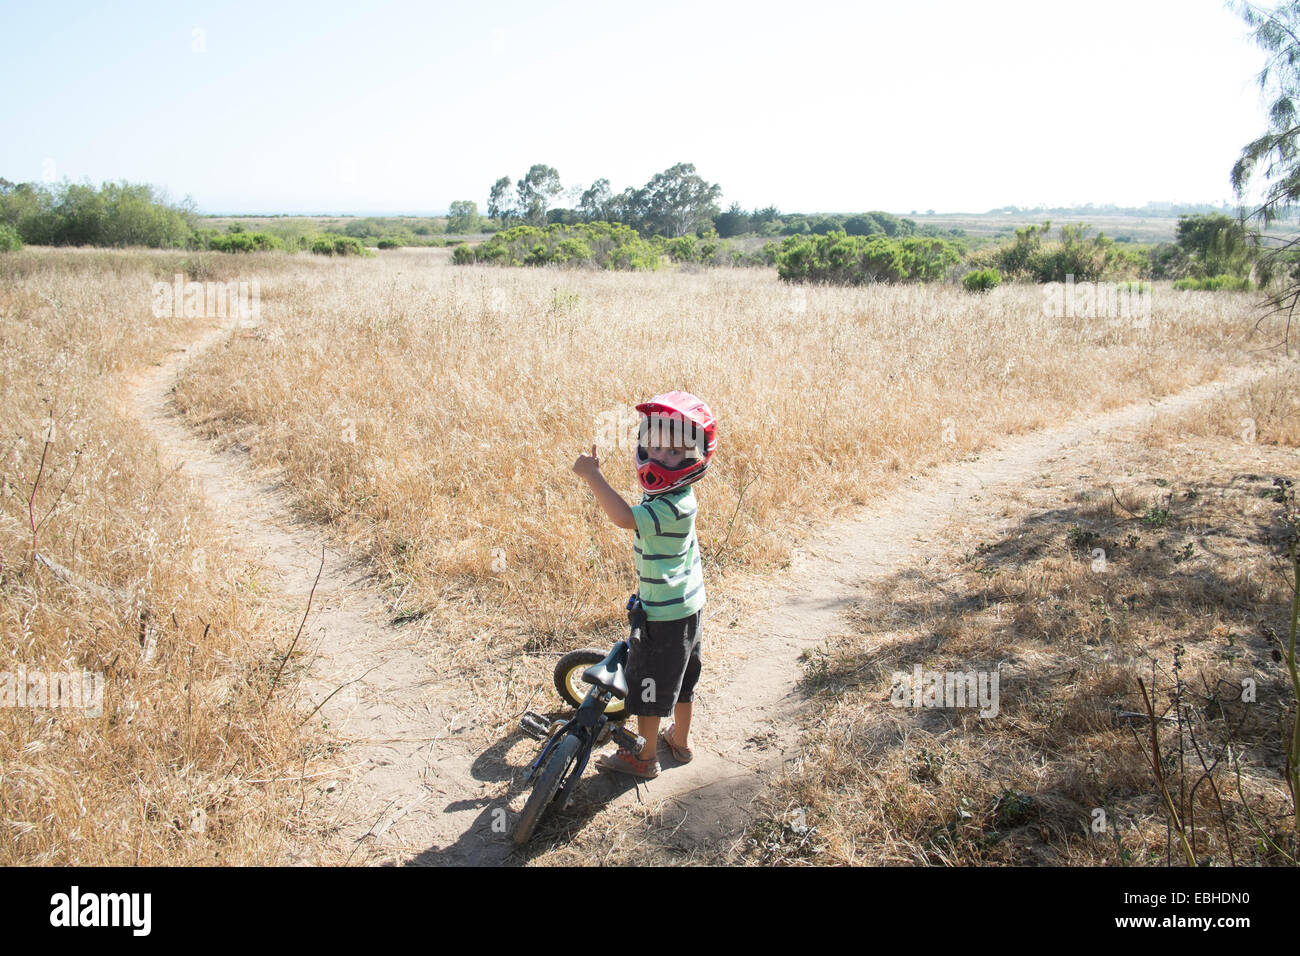 Young boy on path in field with bike - Stock Image